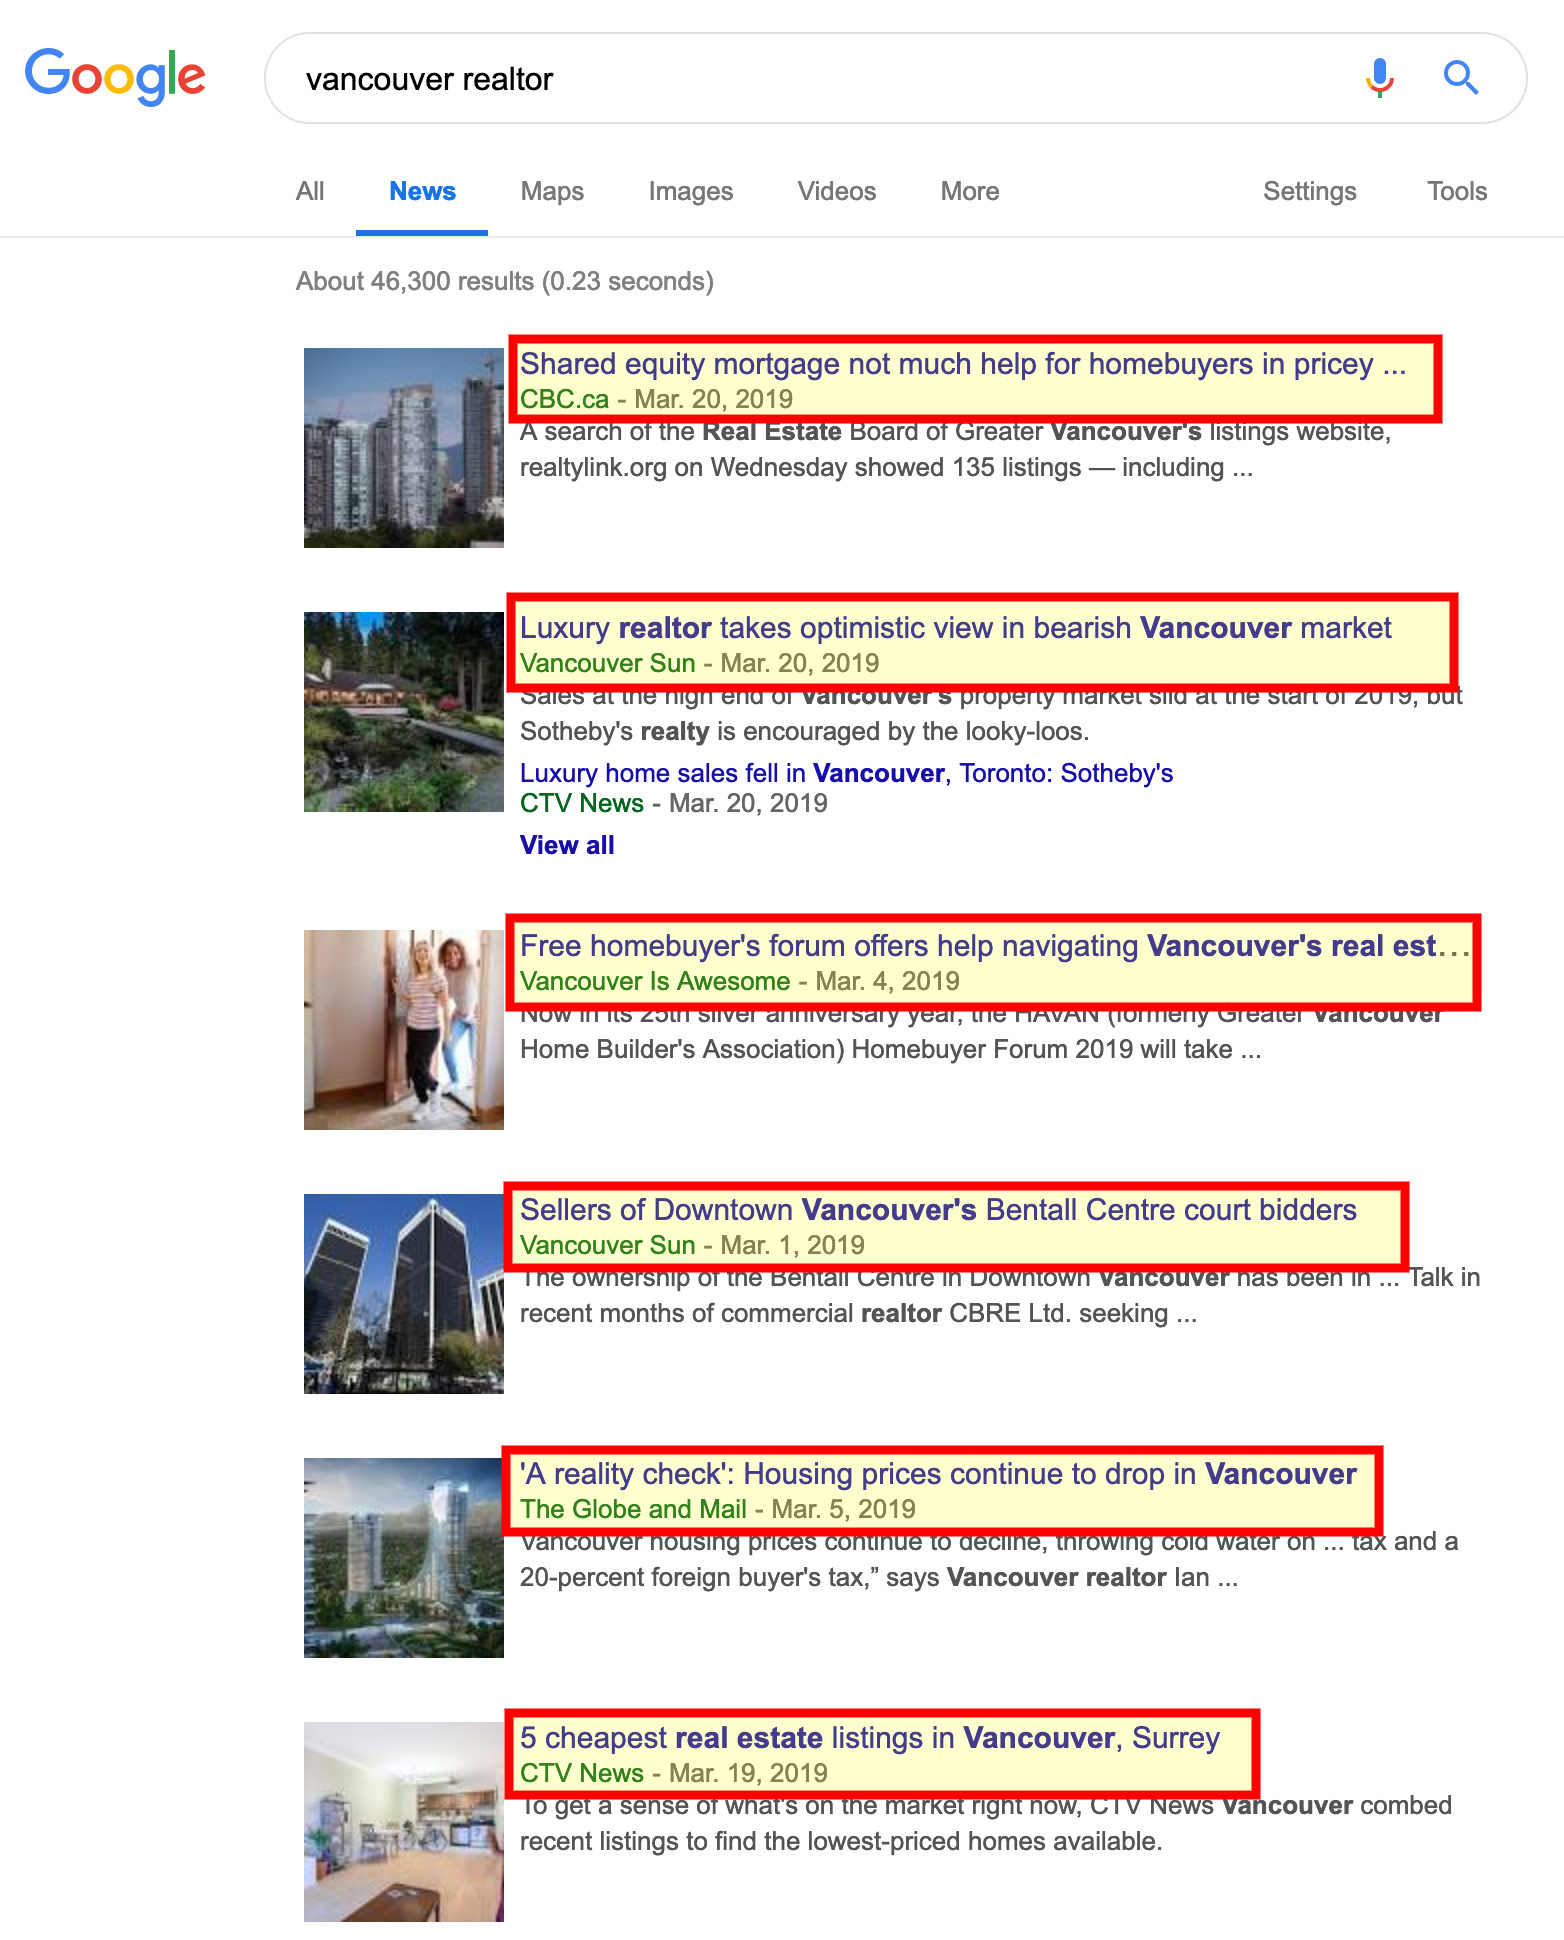 Vancouver Realtor News on Google